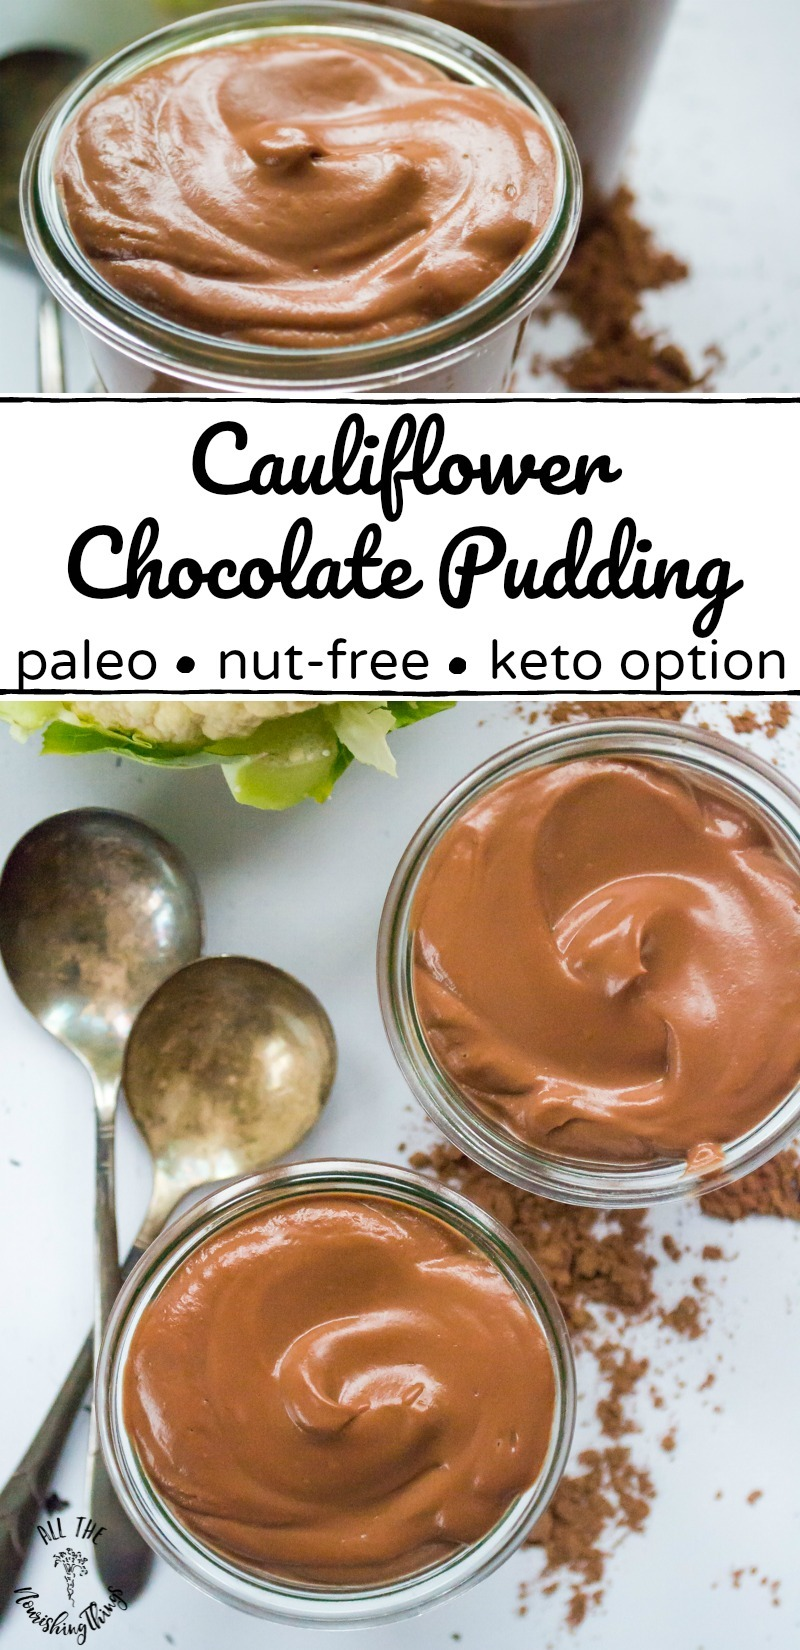 collage of two images of cauliflower chocolate pudding in glass jars with text overlay